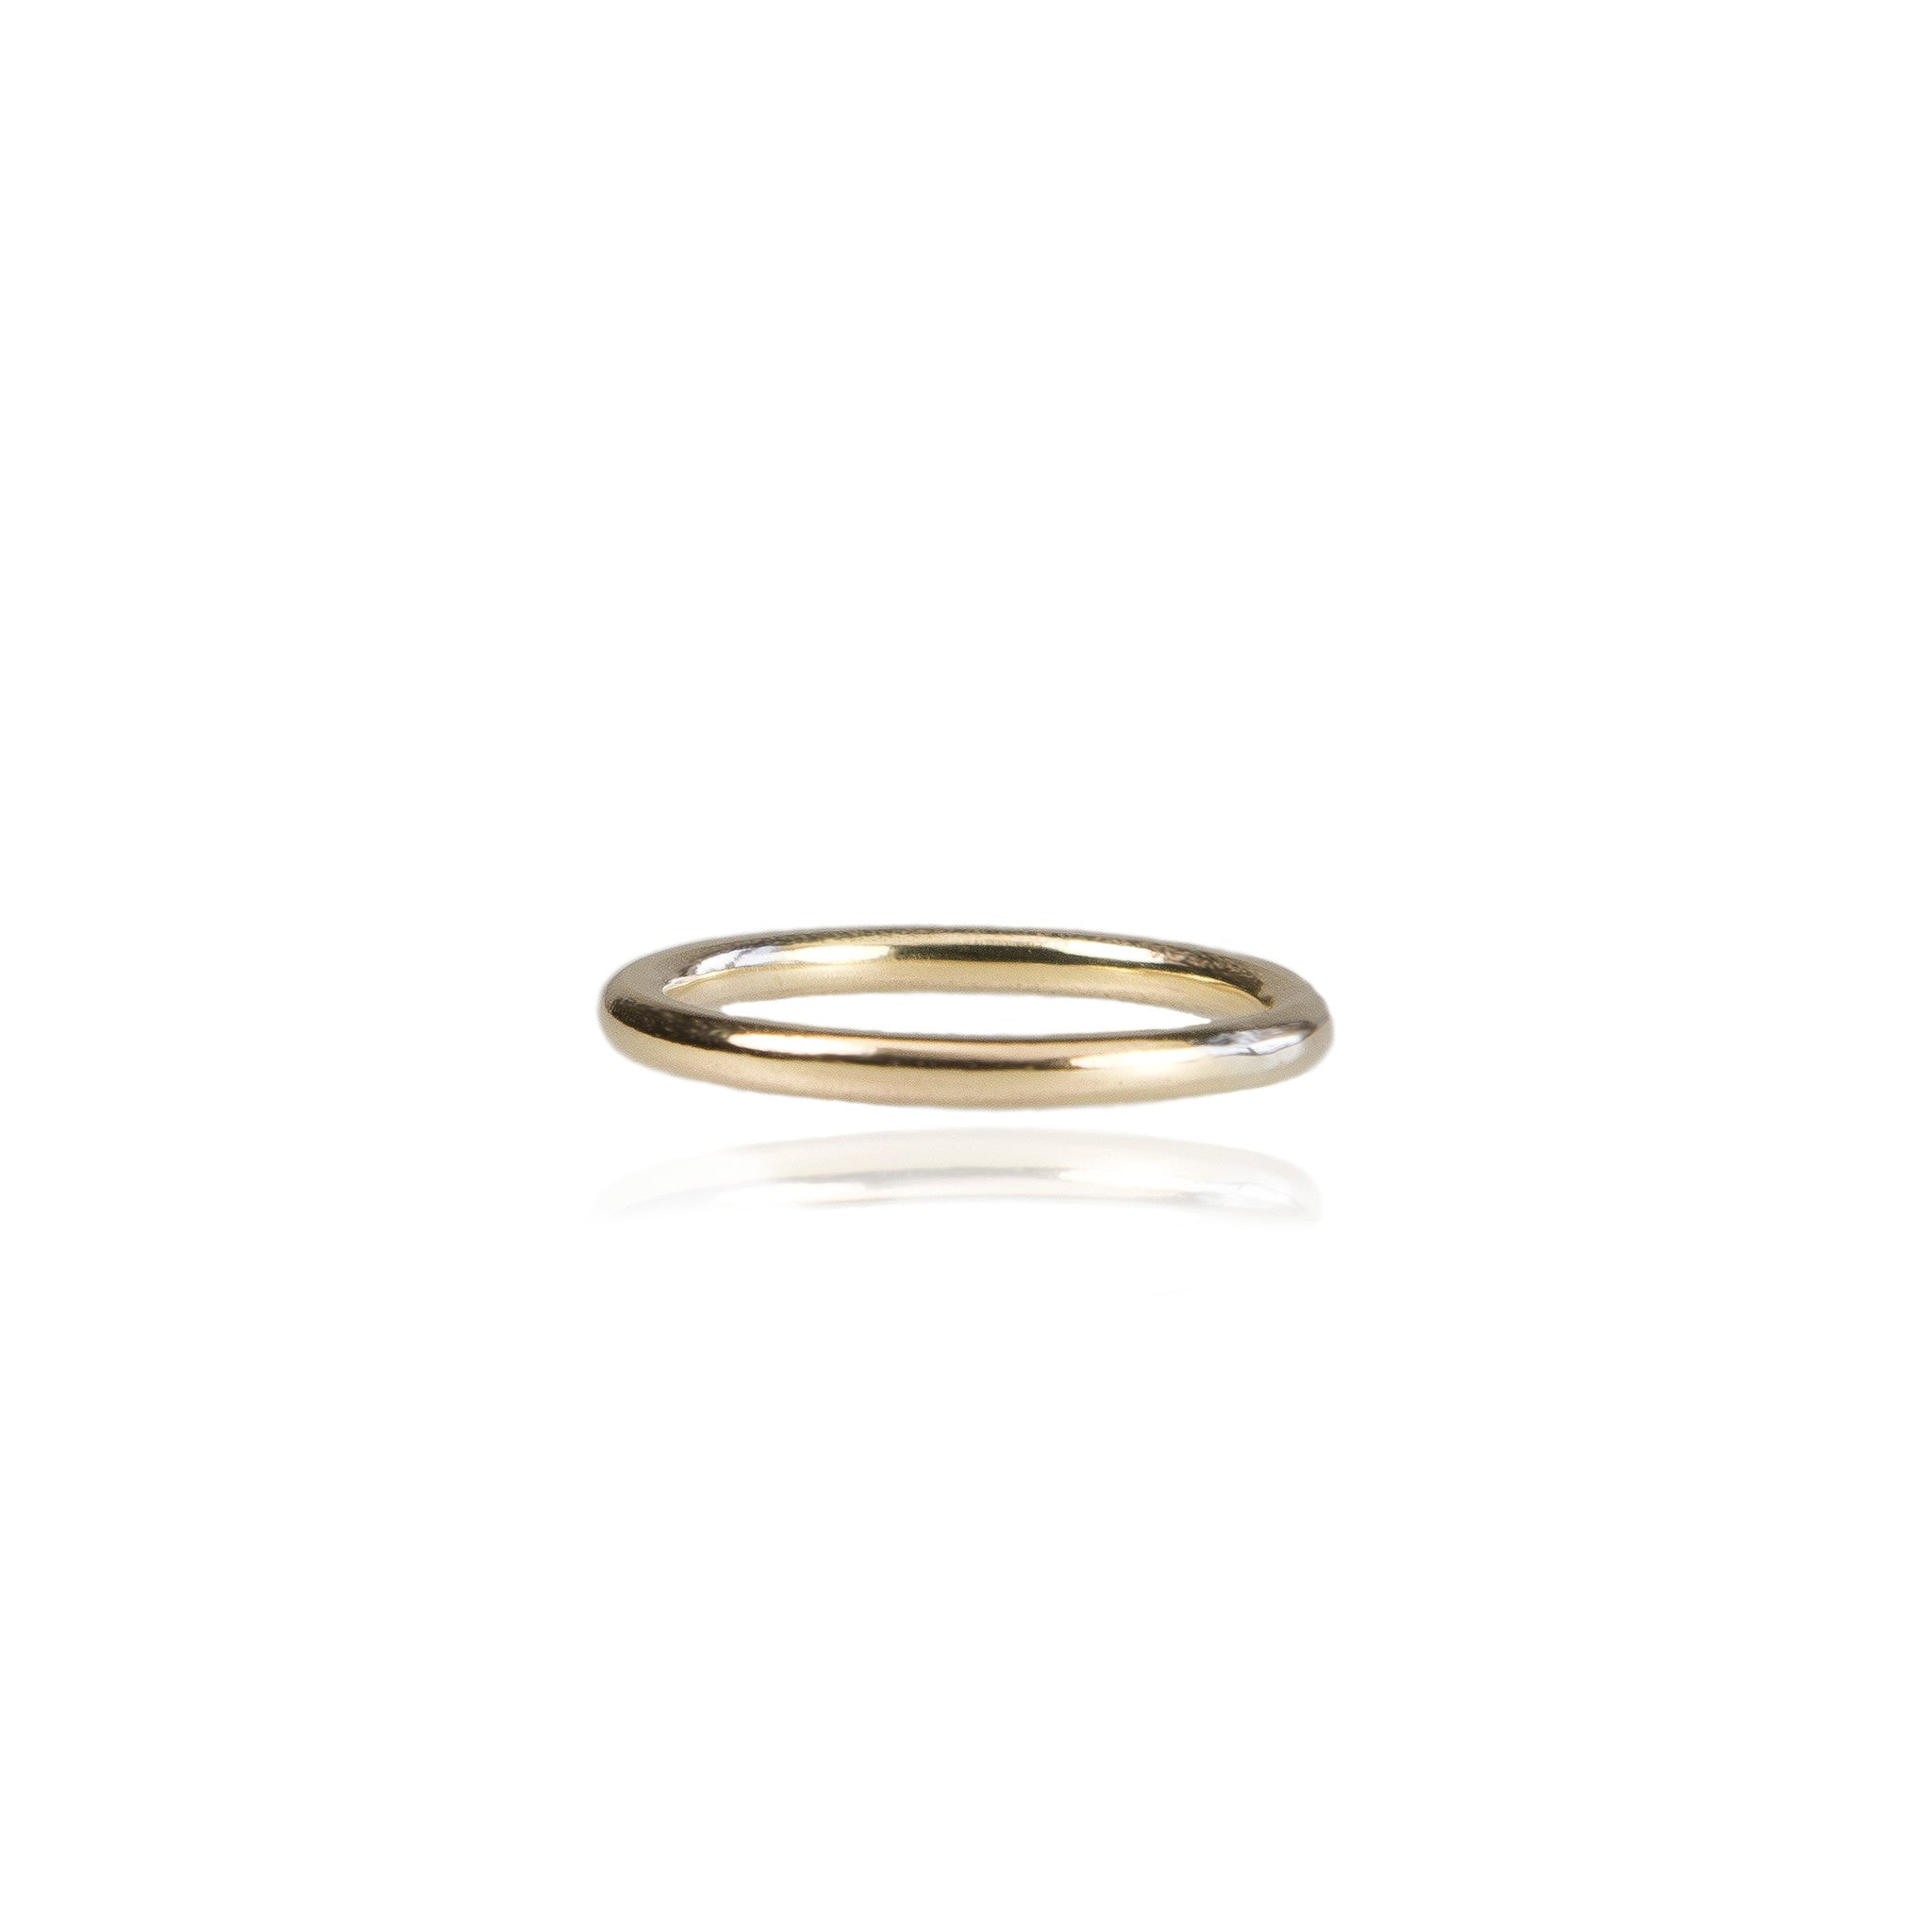 2mm halo wedding ring - 18ct yellow gold - audrey claude jewellery